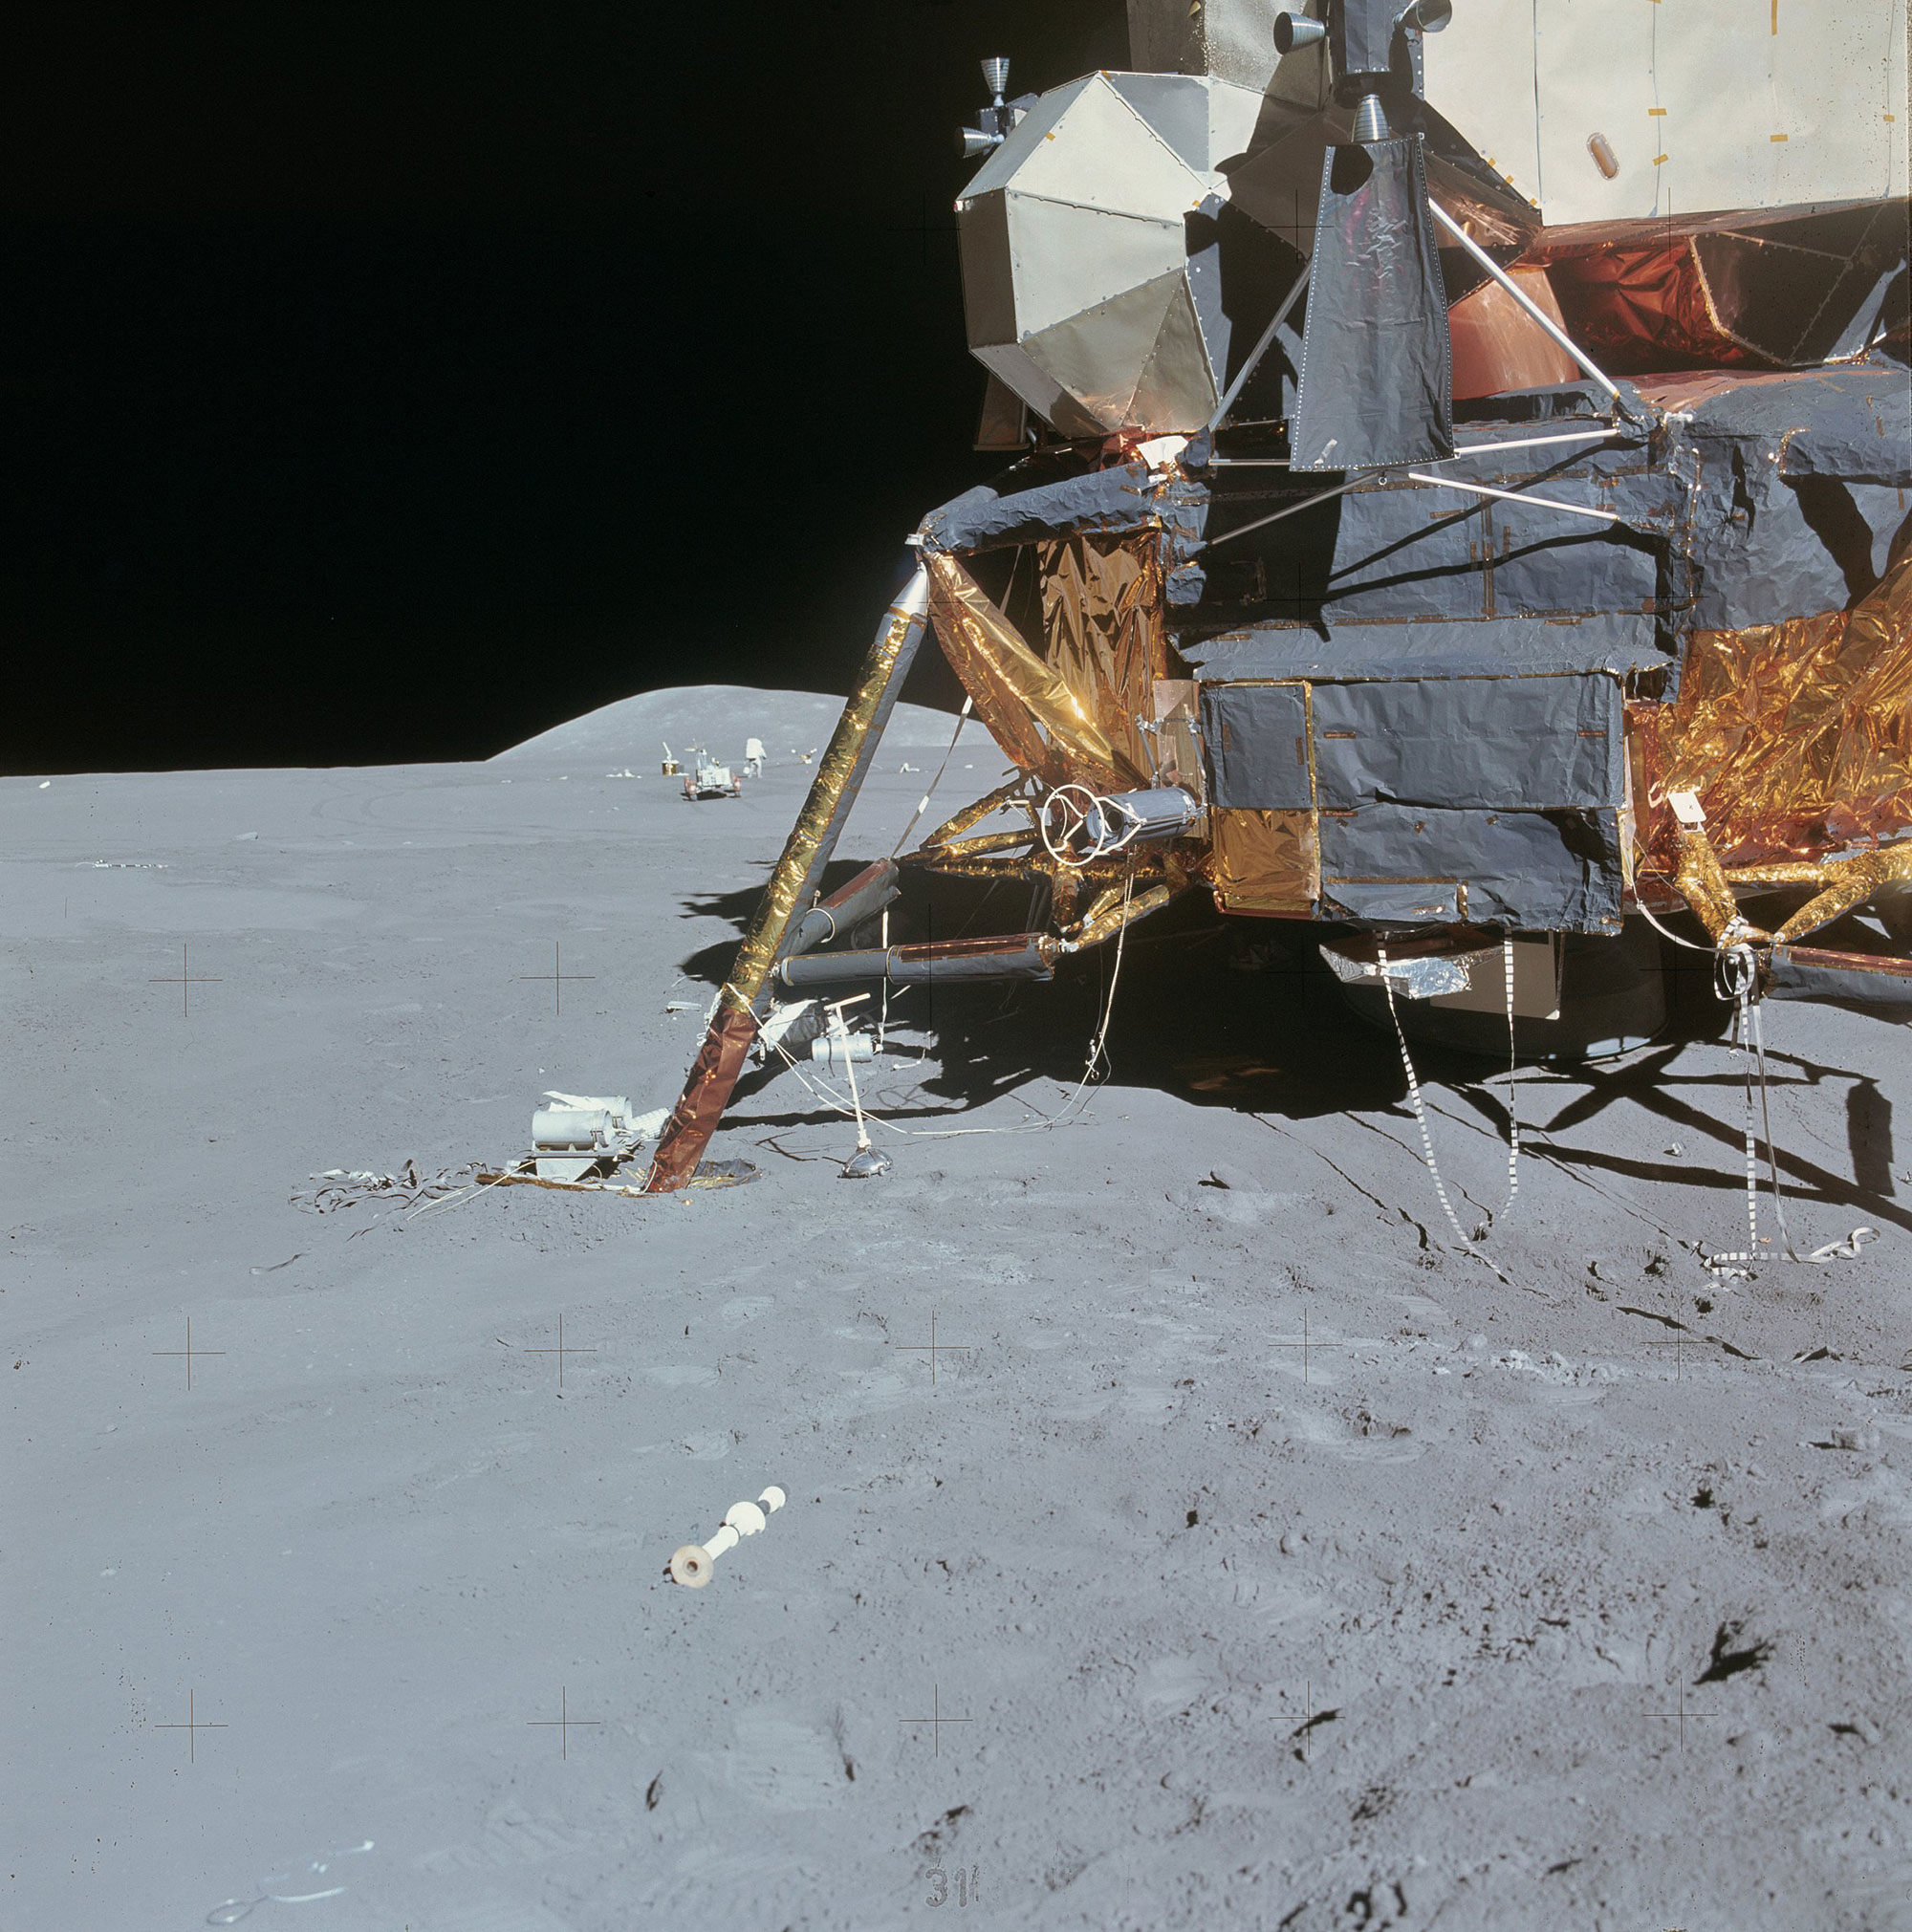 Lunar Module Falcon with the Lunar Rover seen behind its left side off in the distance. Credit: NASA via Retro Space Images